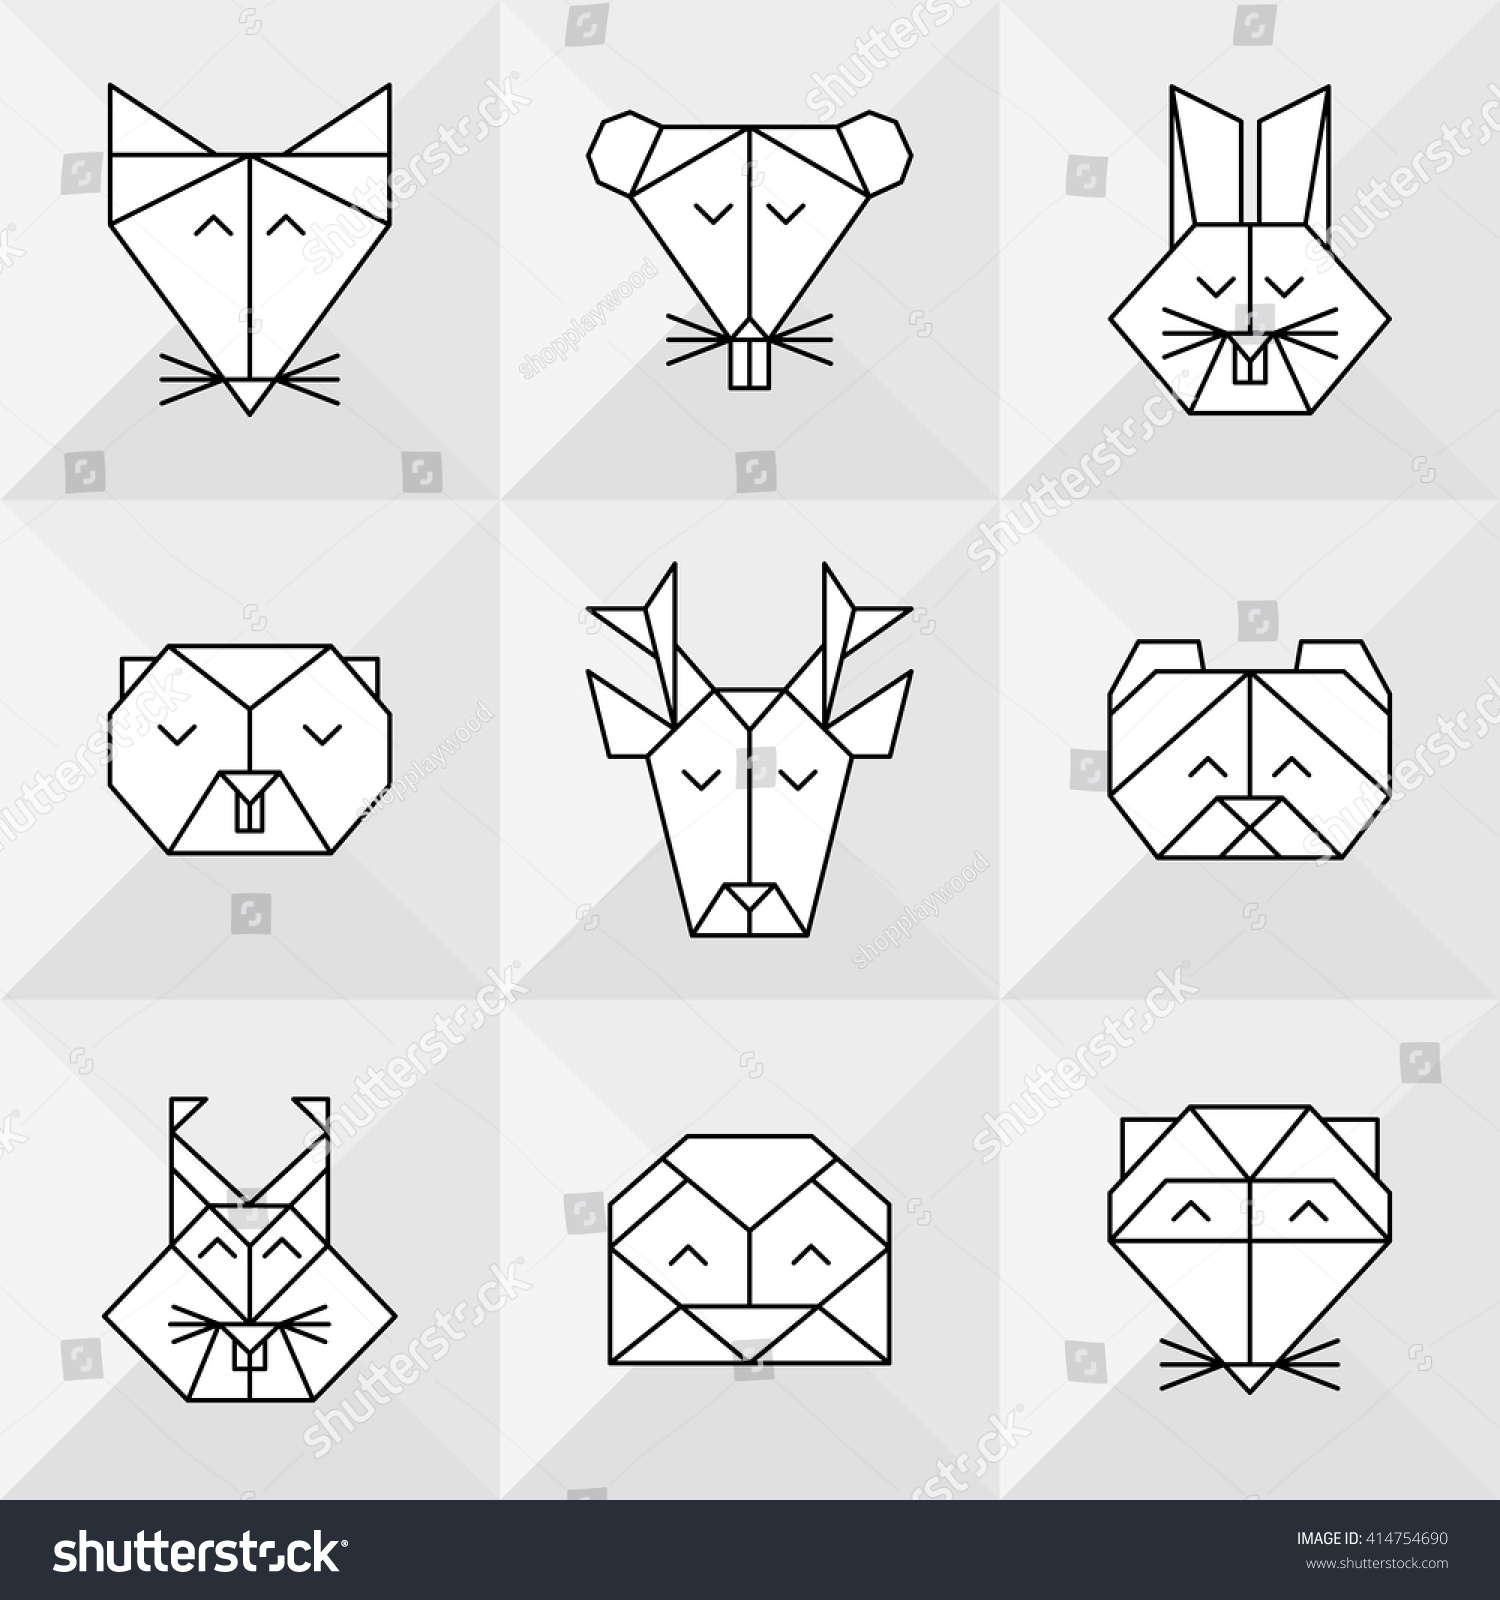 Vector Low Poly Animals Line Design Icon Set Tattoo Seamless Animal Pattern Origami Forest